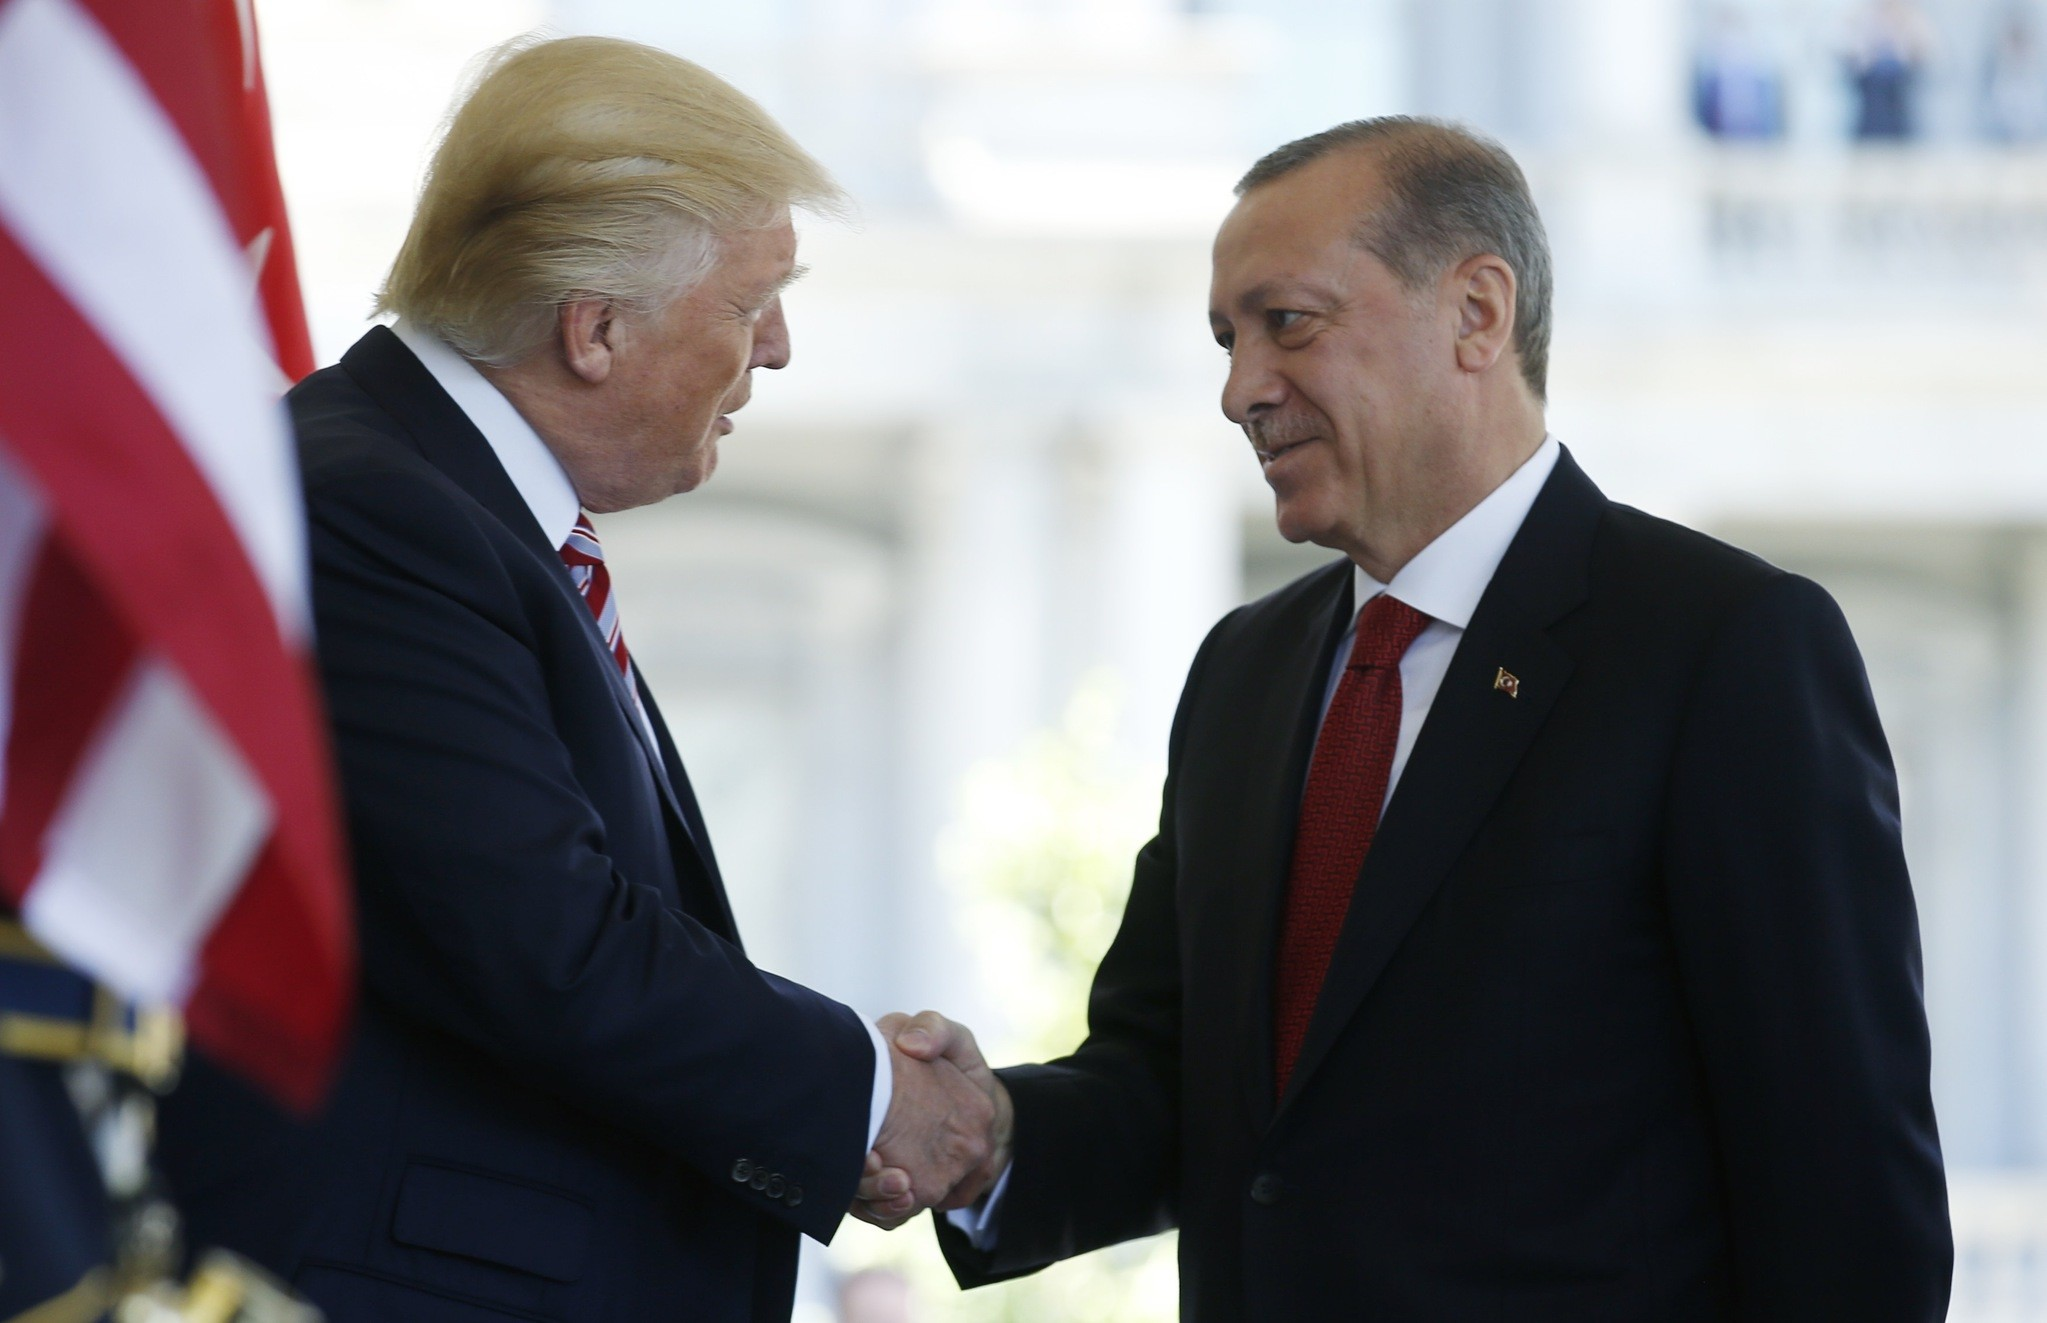 US President Donald Trump welcomes President Recep Tayyip Erdou011fan as he arrives for meetings at the White House in Washington, DC, May 16, 2017. (REUTERS Photo)